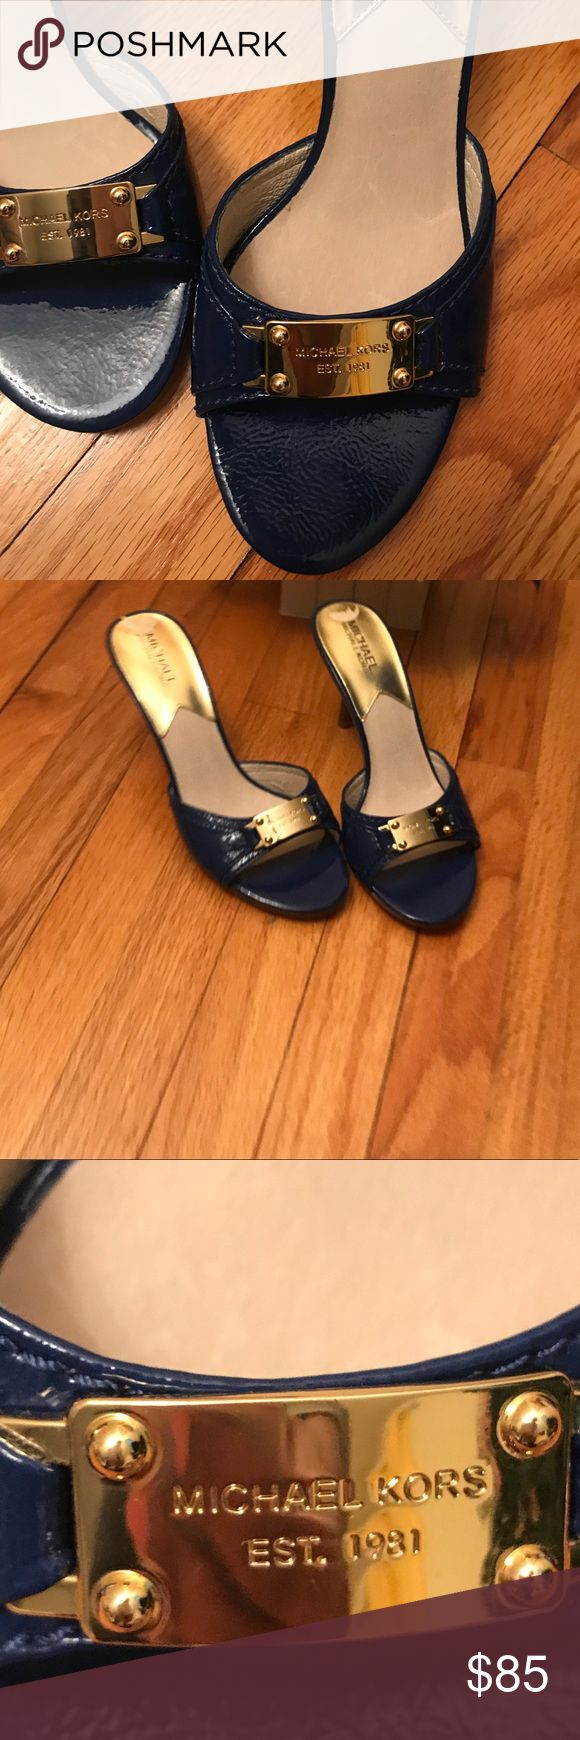 """Michael KORS: Deep Blue Gold Label Sandals Brand NEW.  These gorgeous slides are incredibly unique.  From their deep blue hue, to the gold MK bar on the foot strap, these are classy and sassy from heels to toes.  Pair with a flowy dress, skinny jeans or mini skirt.    The 3"""" heel makes them easy to slide on and slip off, and look fabulous while your feet feel fabulous too! Michael Kors Shoes Heels"""